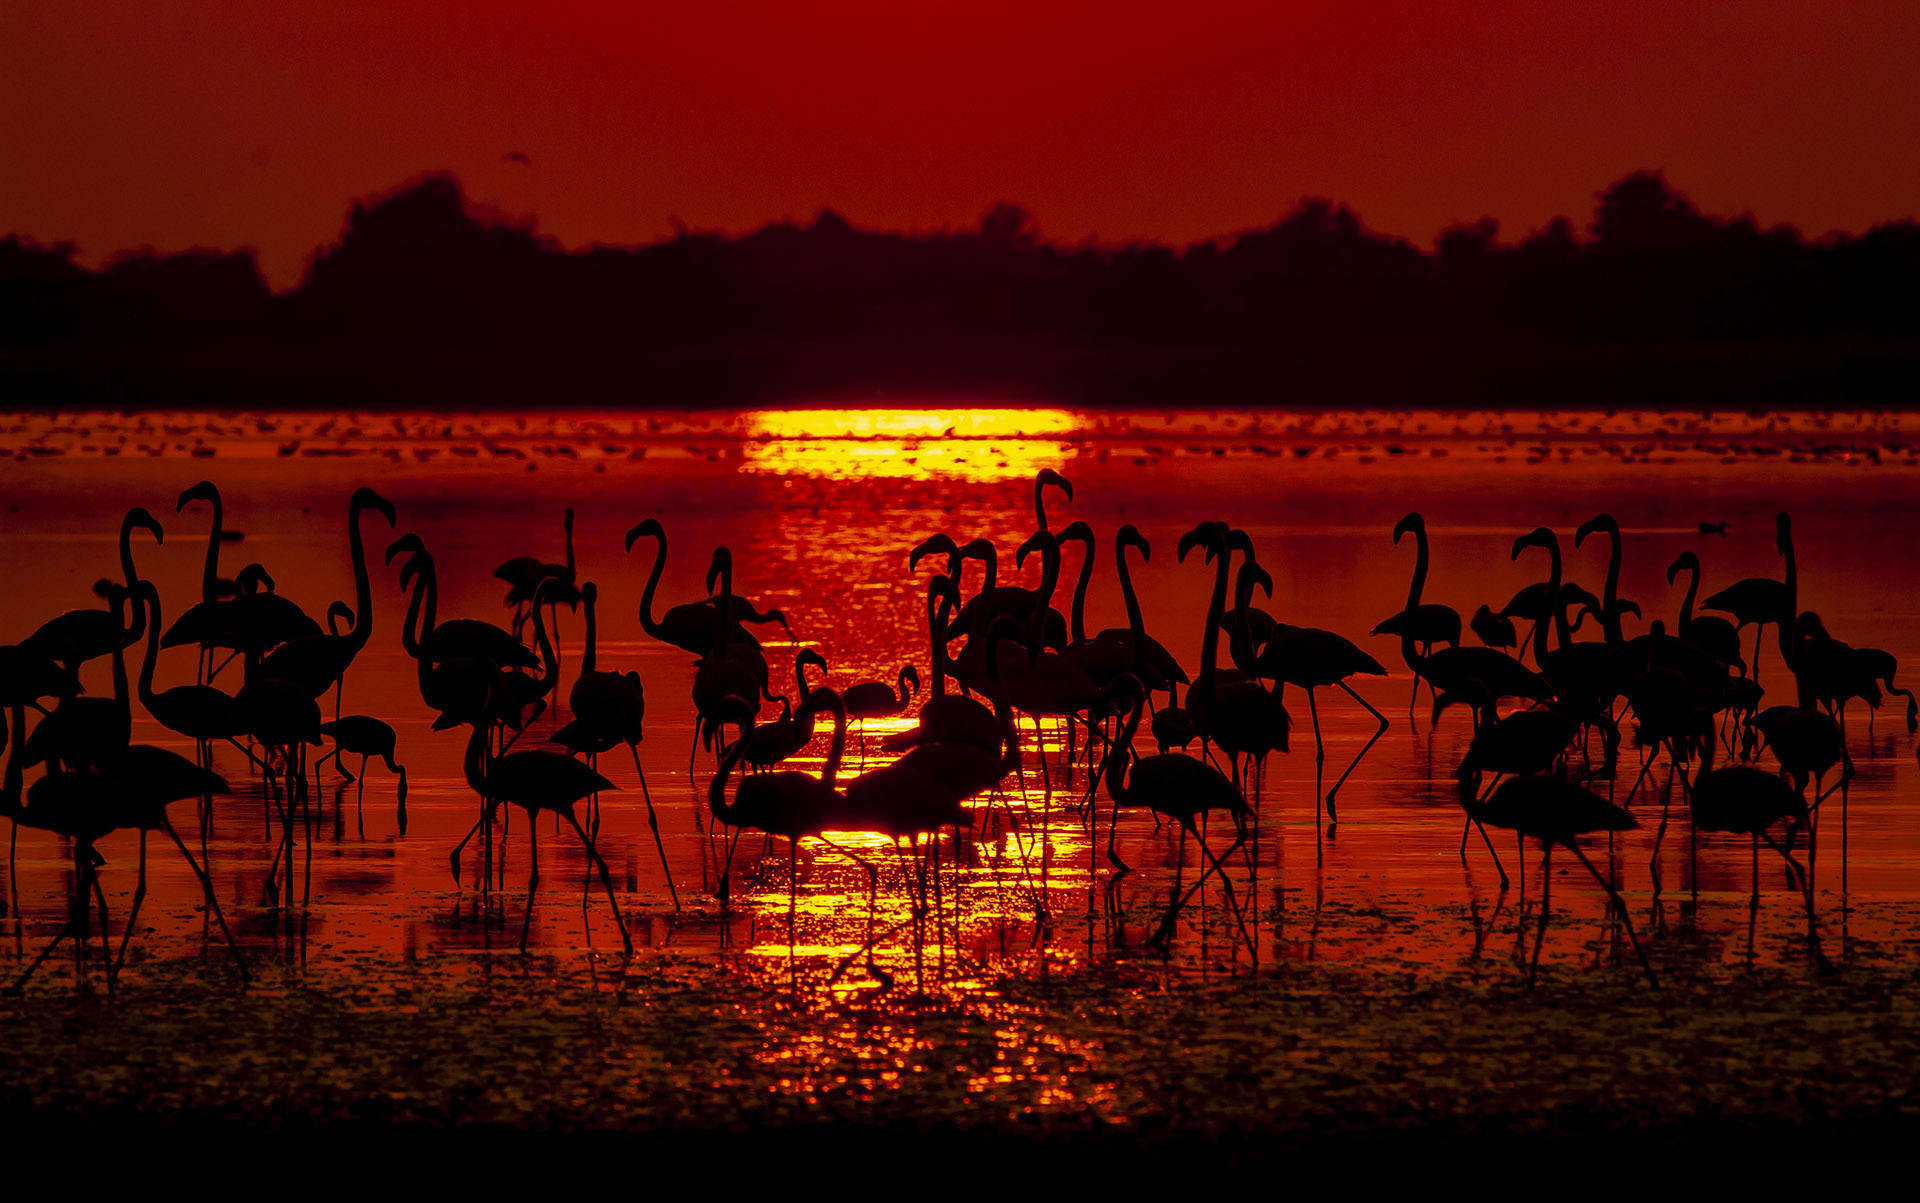 """Flamingos are monogamous; they mate with the same partner for life, or until one of the birds dies. The breeding cycle of both greater and lesser flamingos takes at least 2.5 months and involves nesting, egg-laying, hatching, and caring for young until they are old enough to travel. Before they arrive in the Rann, however, the birds engage in an elaborate courtship ritual where adult birds march together in unison. """"Imagine 400 to 1,000 adult birds, with their necks upright, and beaks facing the sky, all bobbing their heads left and right in perfect synchrony,"""" says Shah. """"I have seen these displays last from 90 minutes to nine hours."""""""